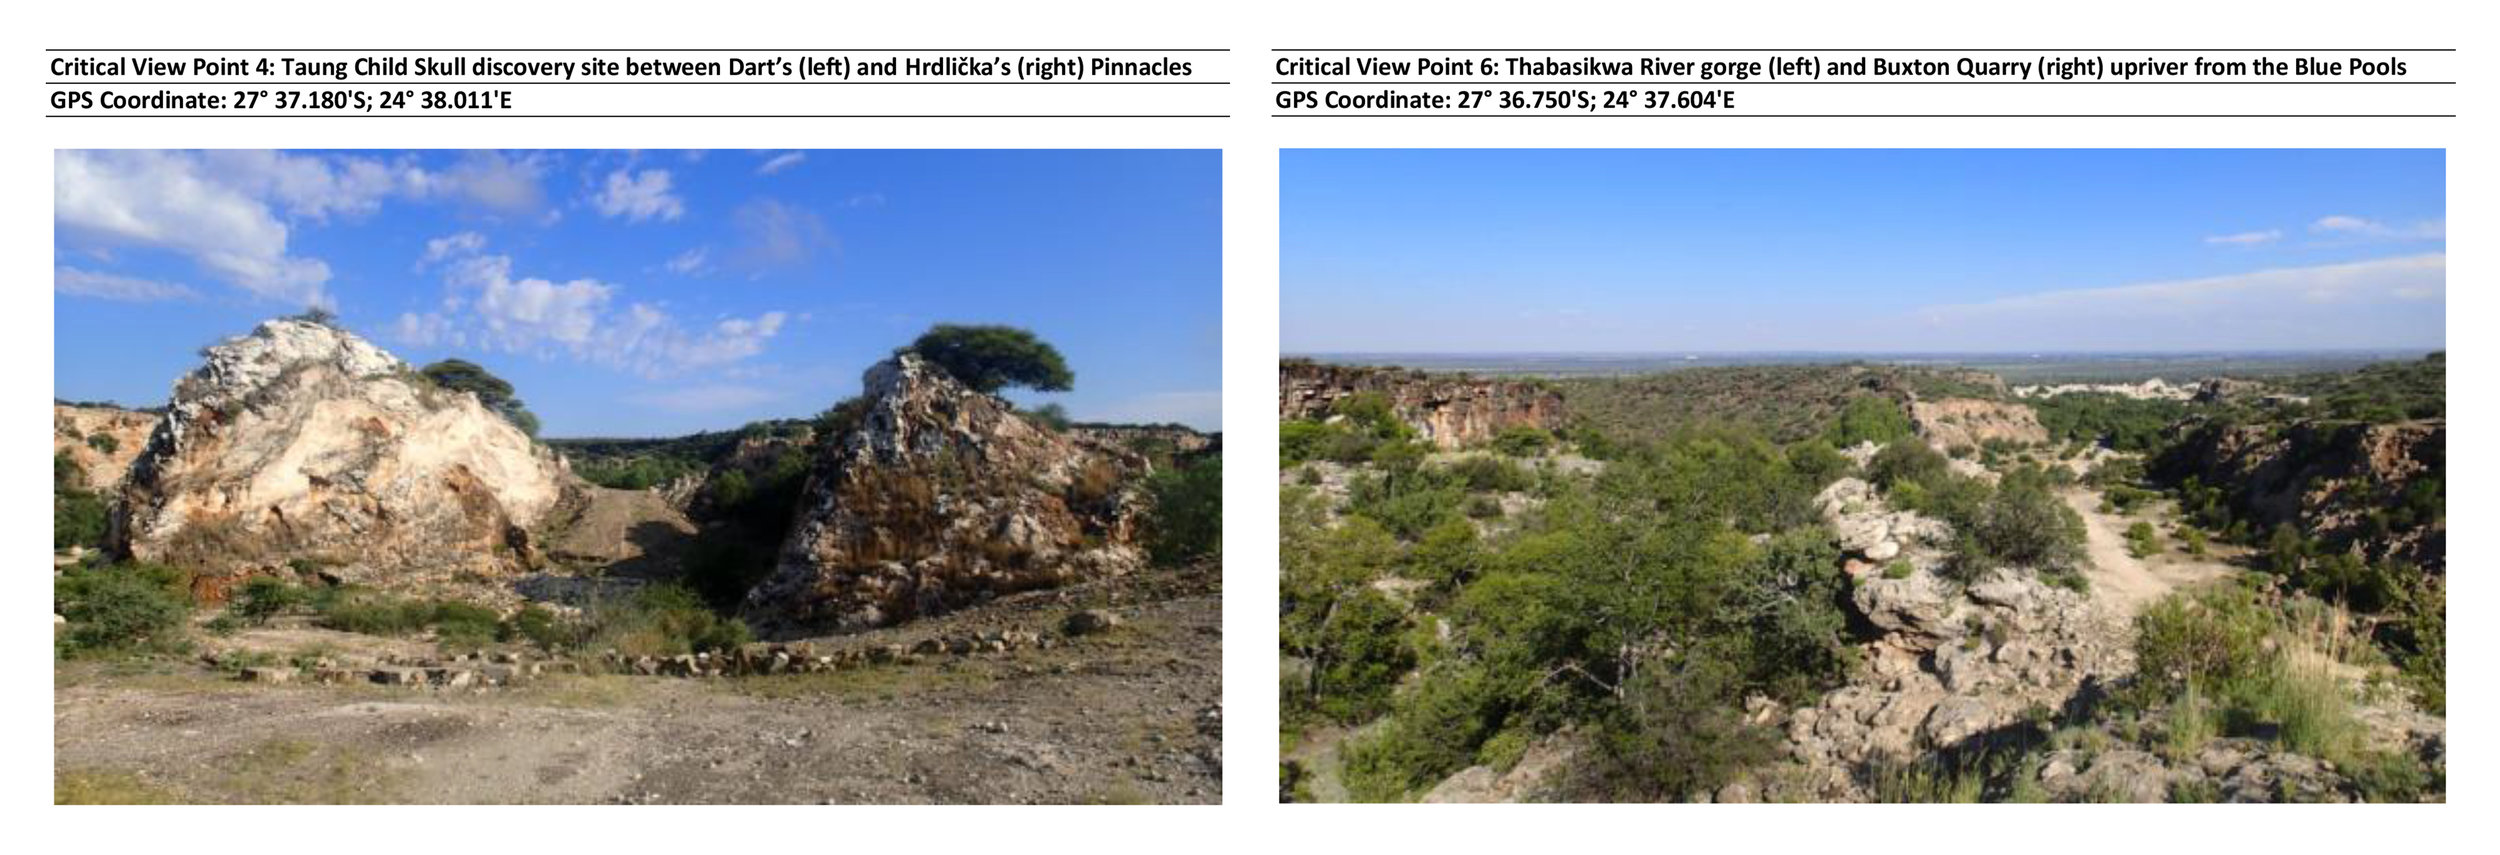 """On the left, the Taung skull fossil discovery site; and on the right, a shot of the surrounding landscape. Both images from EcoAfrica's (2015) report, """"Visual Impact Assessment for Improvement of Visitor Facilities, Site Infrastructure and Heritage Conservation Measures at the Taung Skull World Heritage Site,"""" available  here ."""